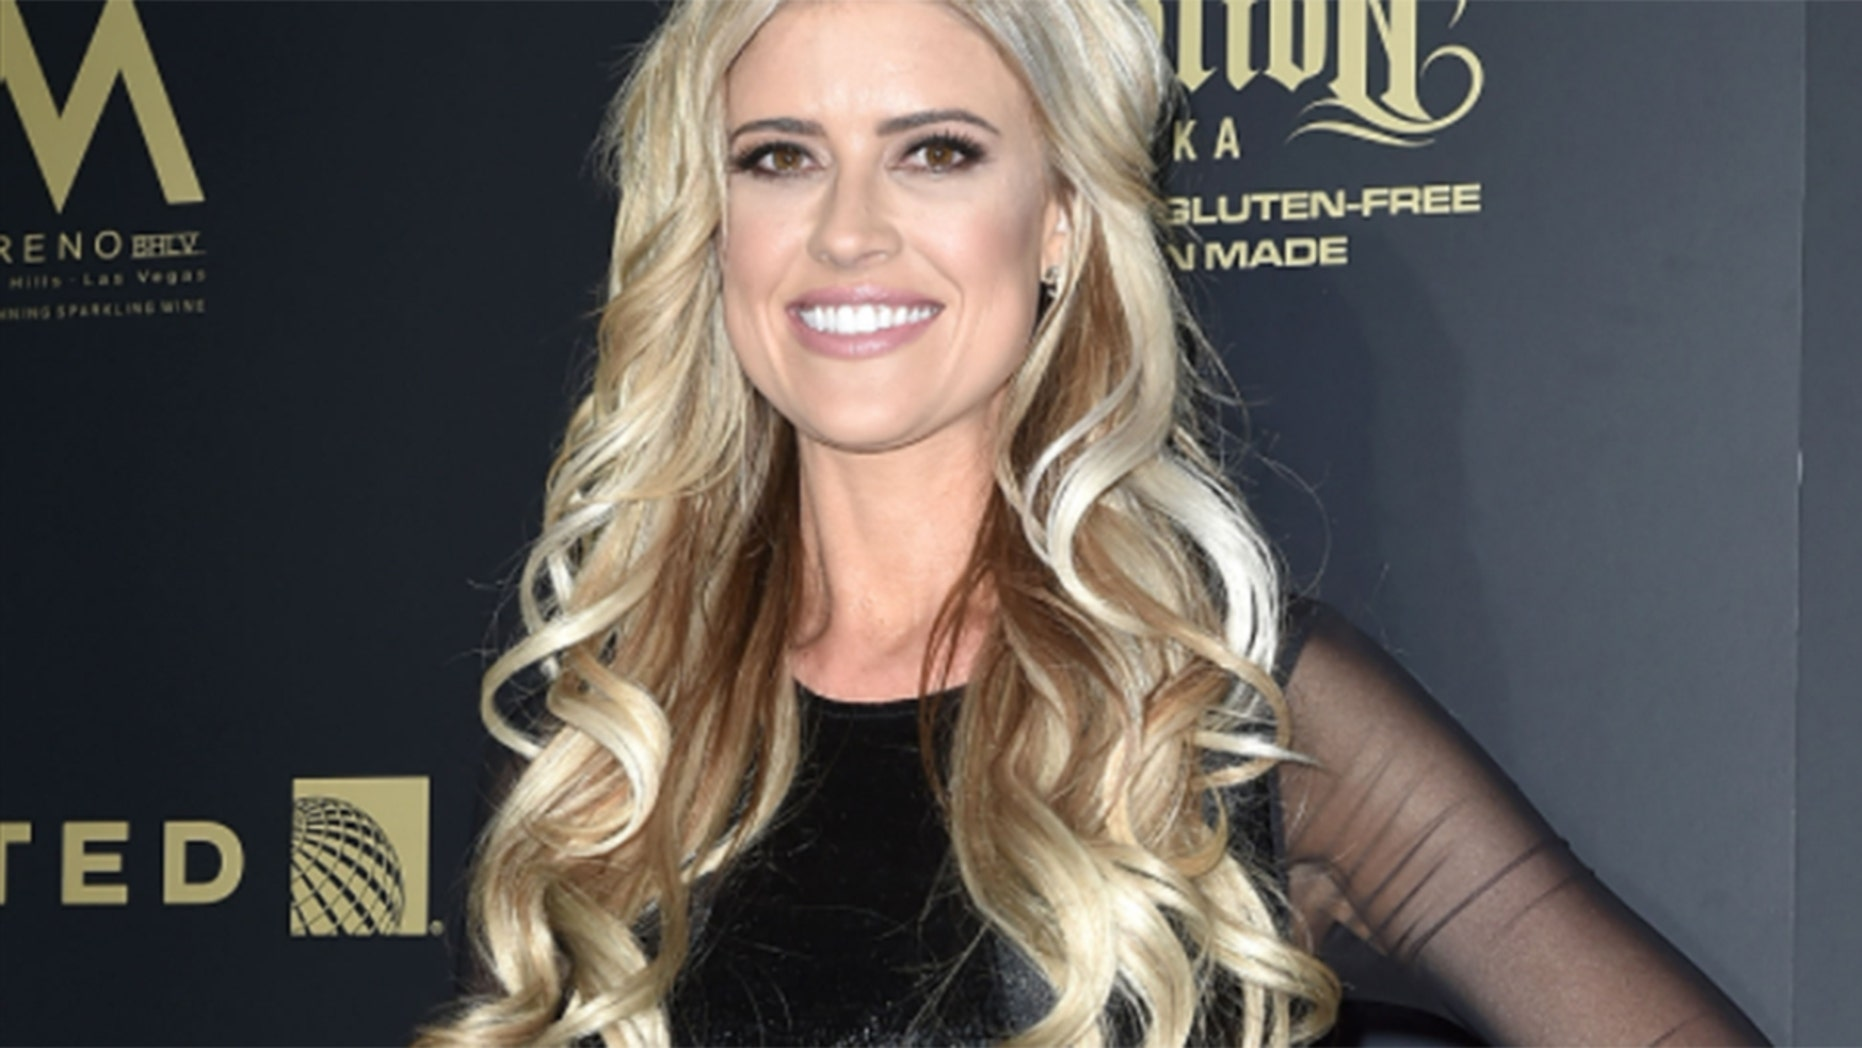 Christina El Moussa is dating British TV host Ant Anstead after breaking up with boyfriend Doug Spedding in October.